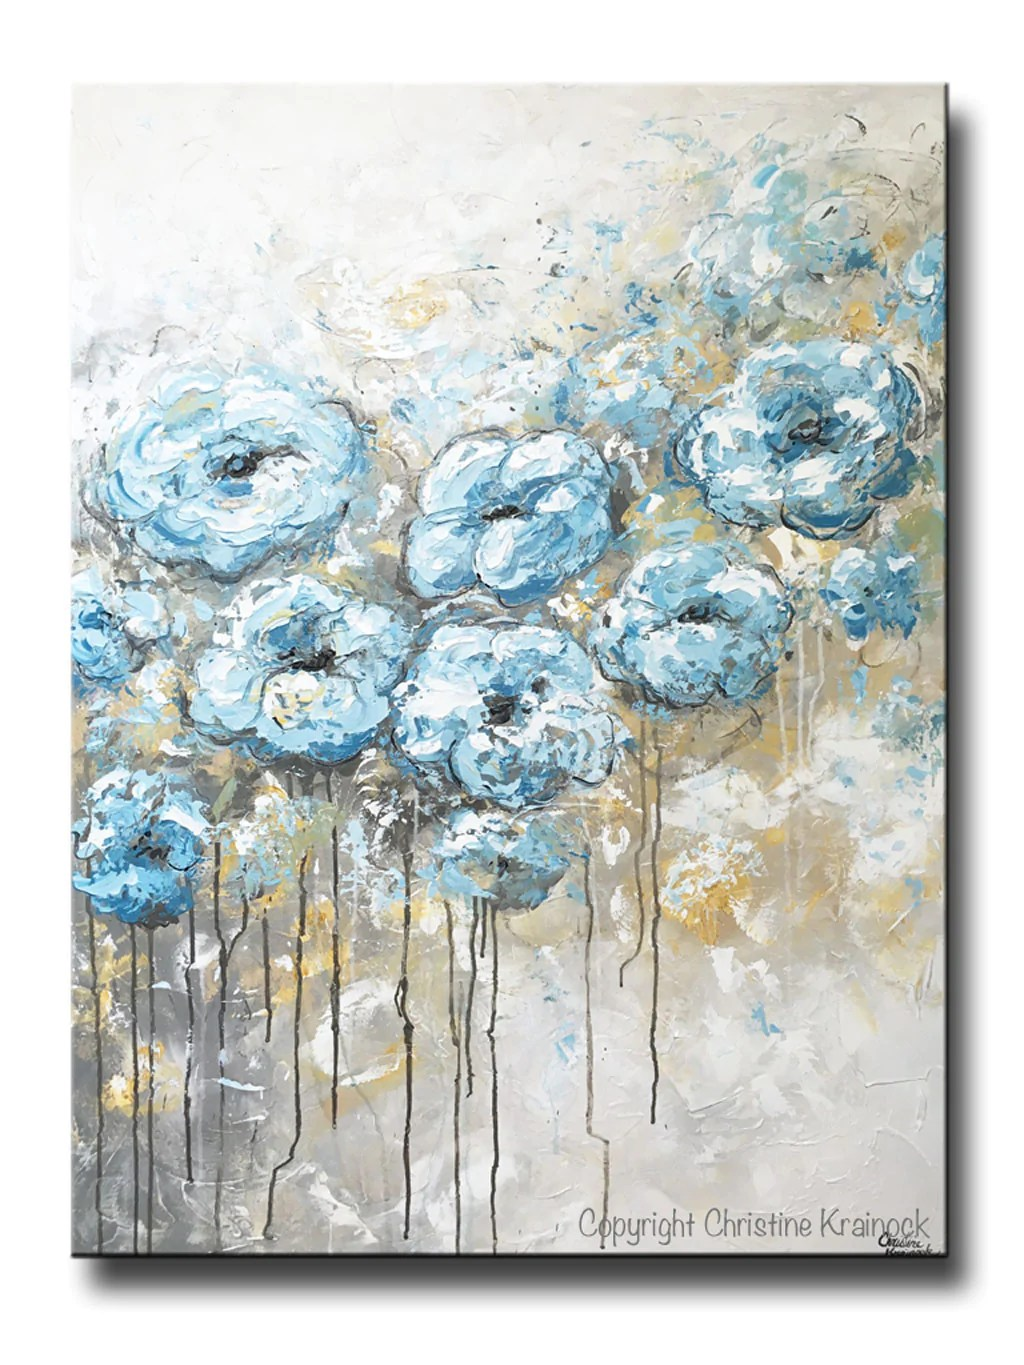 ORIGINAL Art Abstract Flowers Painting Floral Blue White Grey Wall     ORIGINAL Art Abstract Blue White Floral Painting Flowers LARGE Coastal Grey  Gold